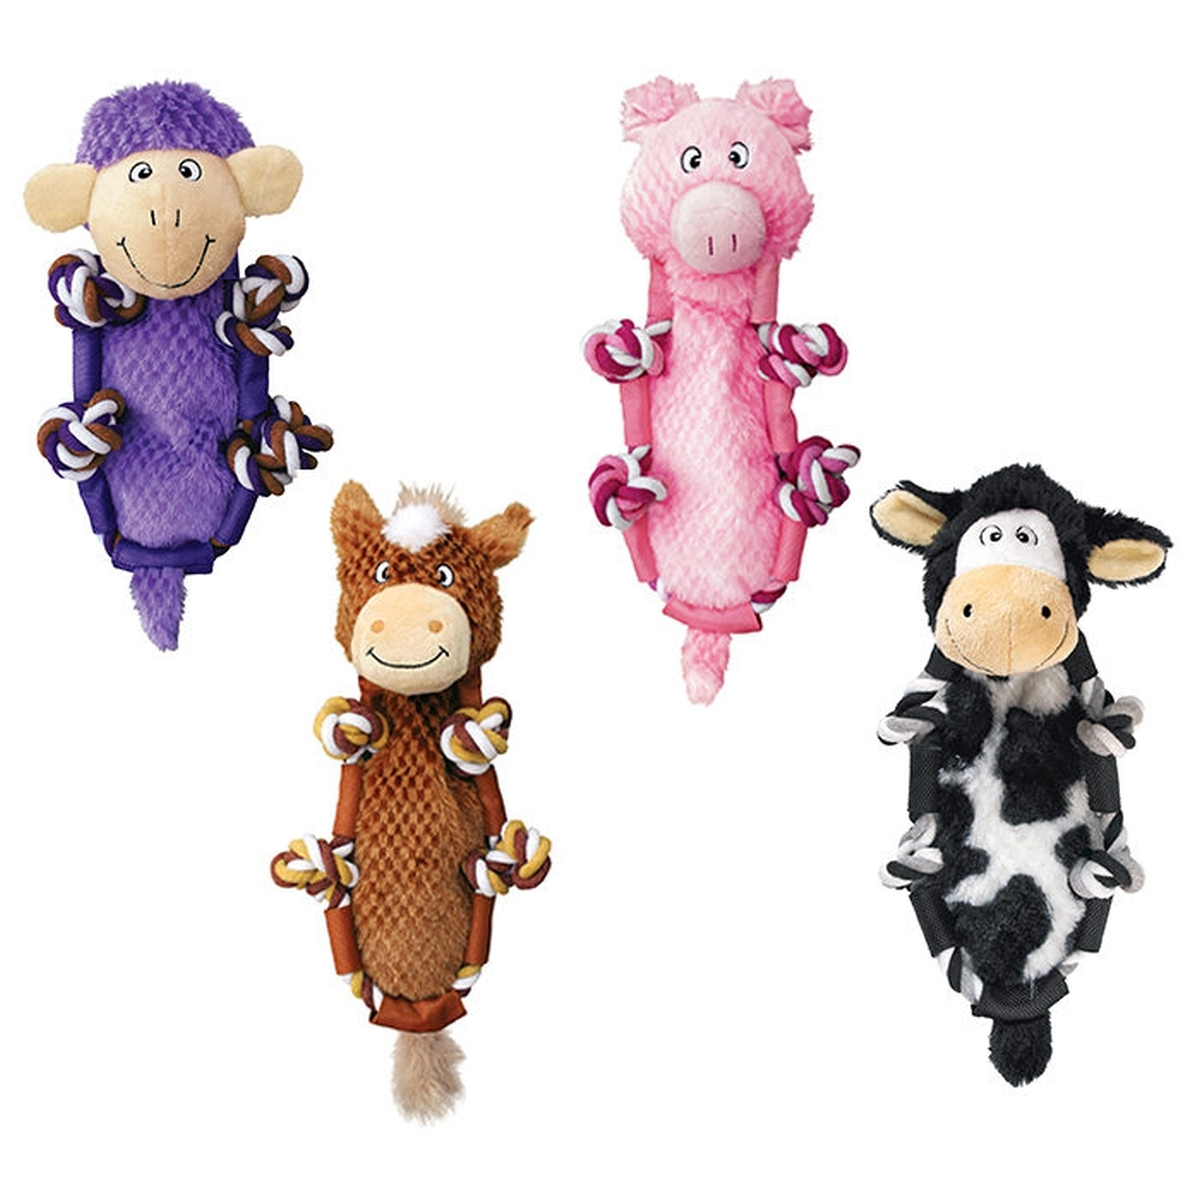 Barnyard knots cow zwart/wit